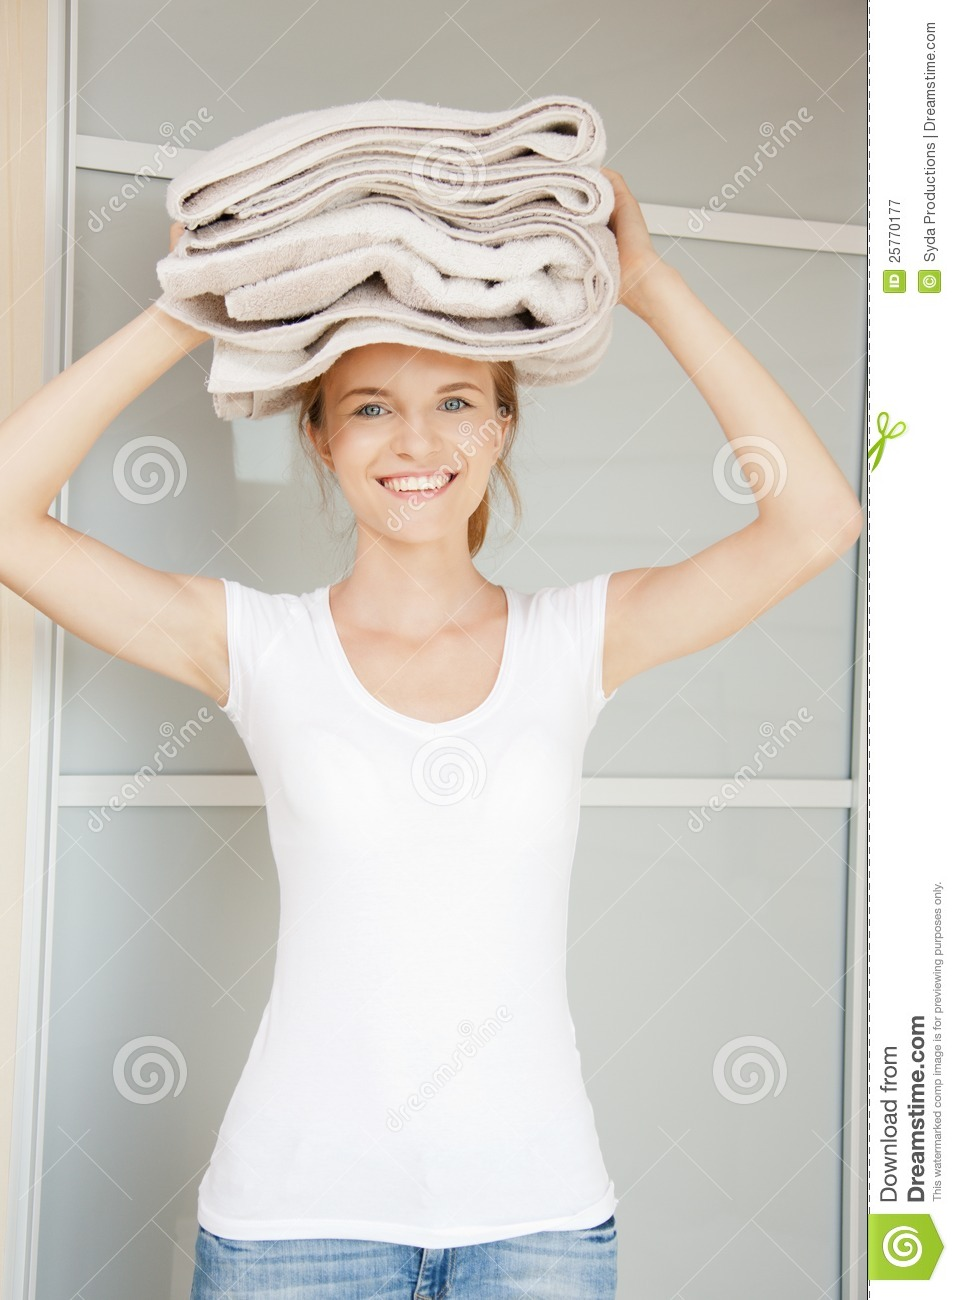 Picture of smiling teenage girl with towels.